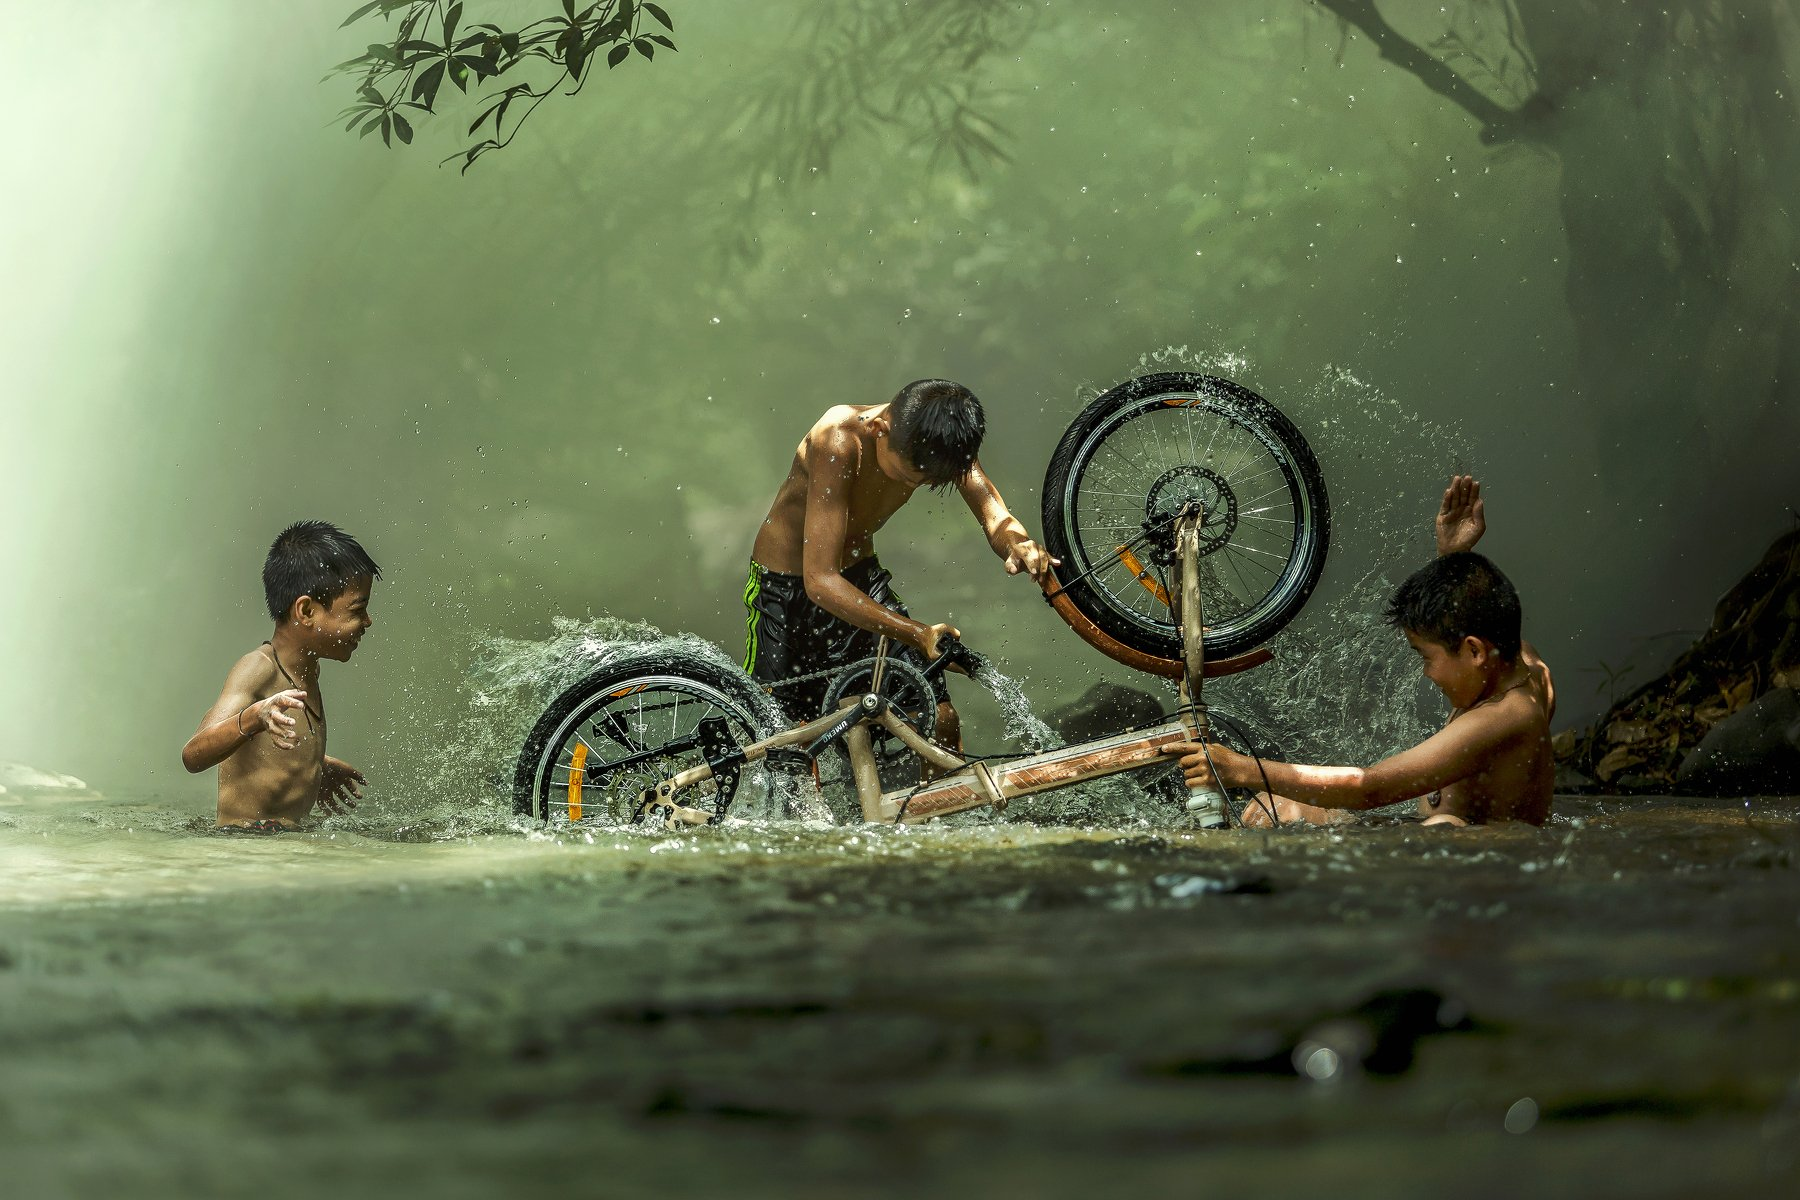 #summer. #Bicycle #Candid #Child #Children Only #Color Image #Day #Horizontal #Outdoors #People #Photography #Pre-Adolescent Child #Real People #Sunlight #Thai culture #Three Boys #Togetherness #Tradition #Transportation #Two People #Wading #Washing #Wate, Jakkree Thampitakkull